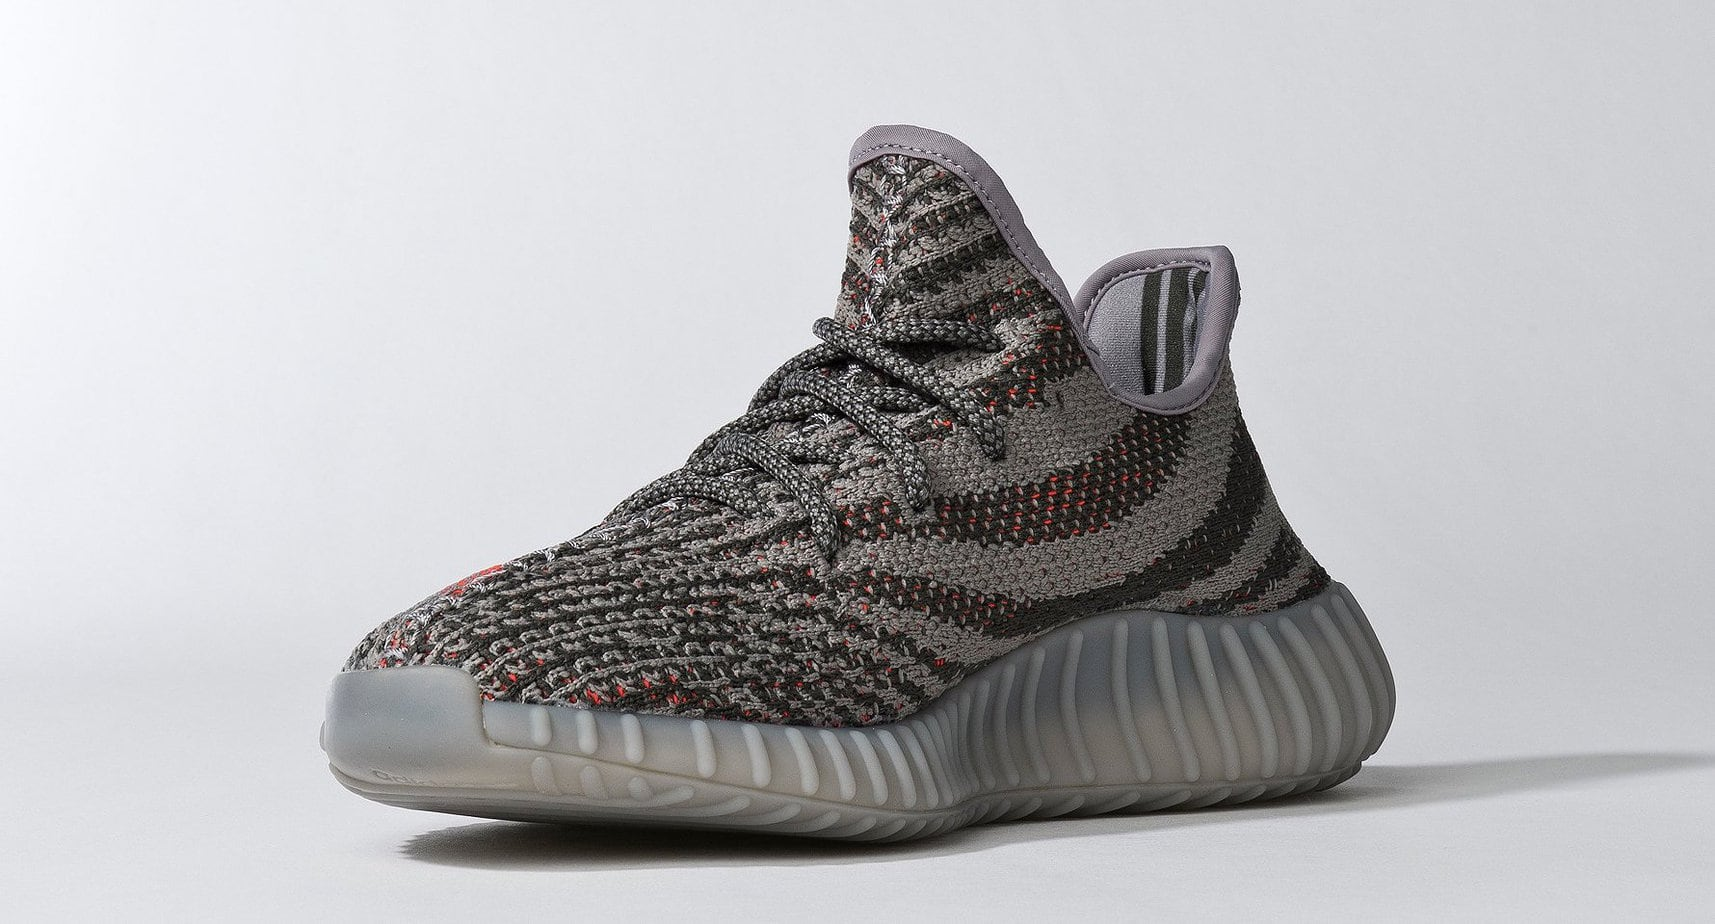 d79c3ab83 Retail Price At  220 - Adidas Yeezy Boost 350 V2 Black White Stripe ...